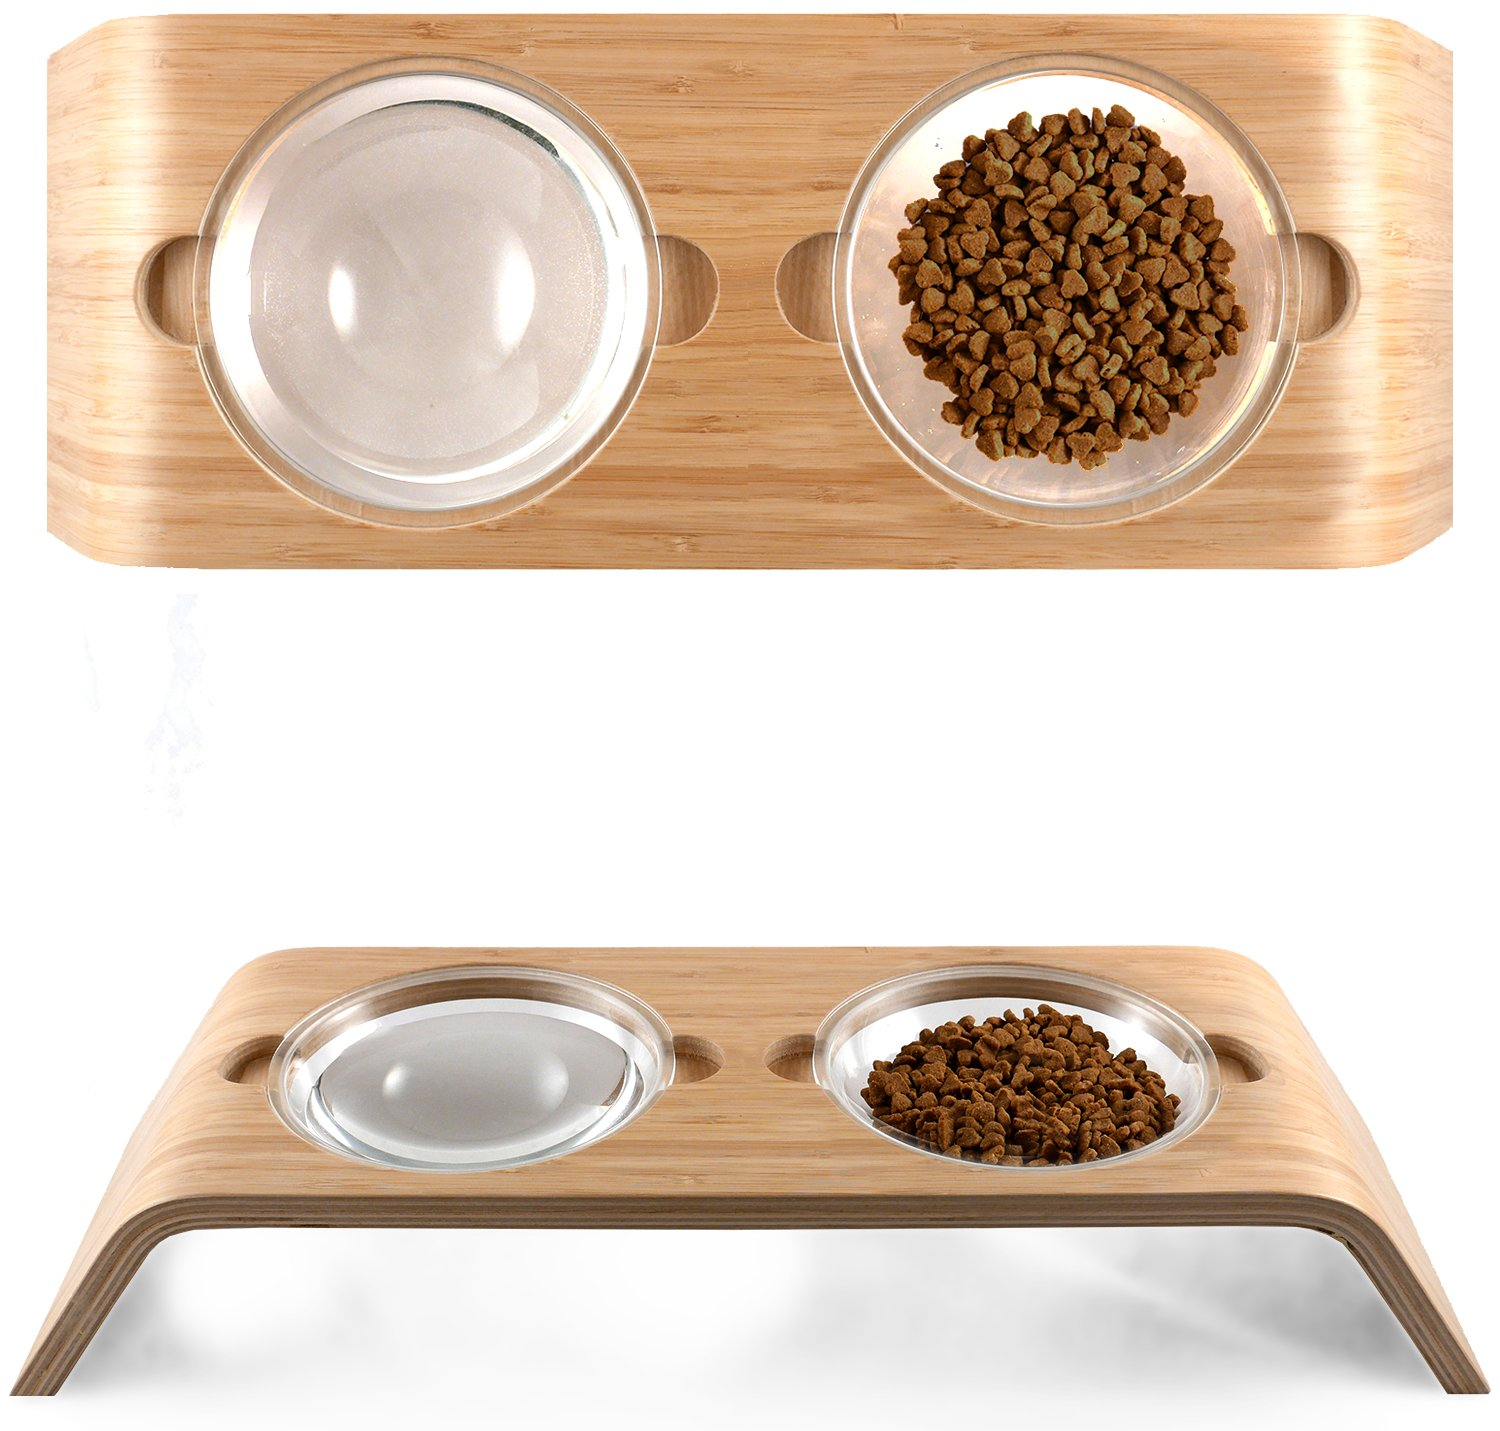 Elevated Dog & Cat Bowls by Fox & Fern - Whisker Fatigue Proof - 4'' Raised Pet Feeder from Bamboo Wood - Cats and Small Dogs Feeding Station - Mid Century Modern - Indent version